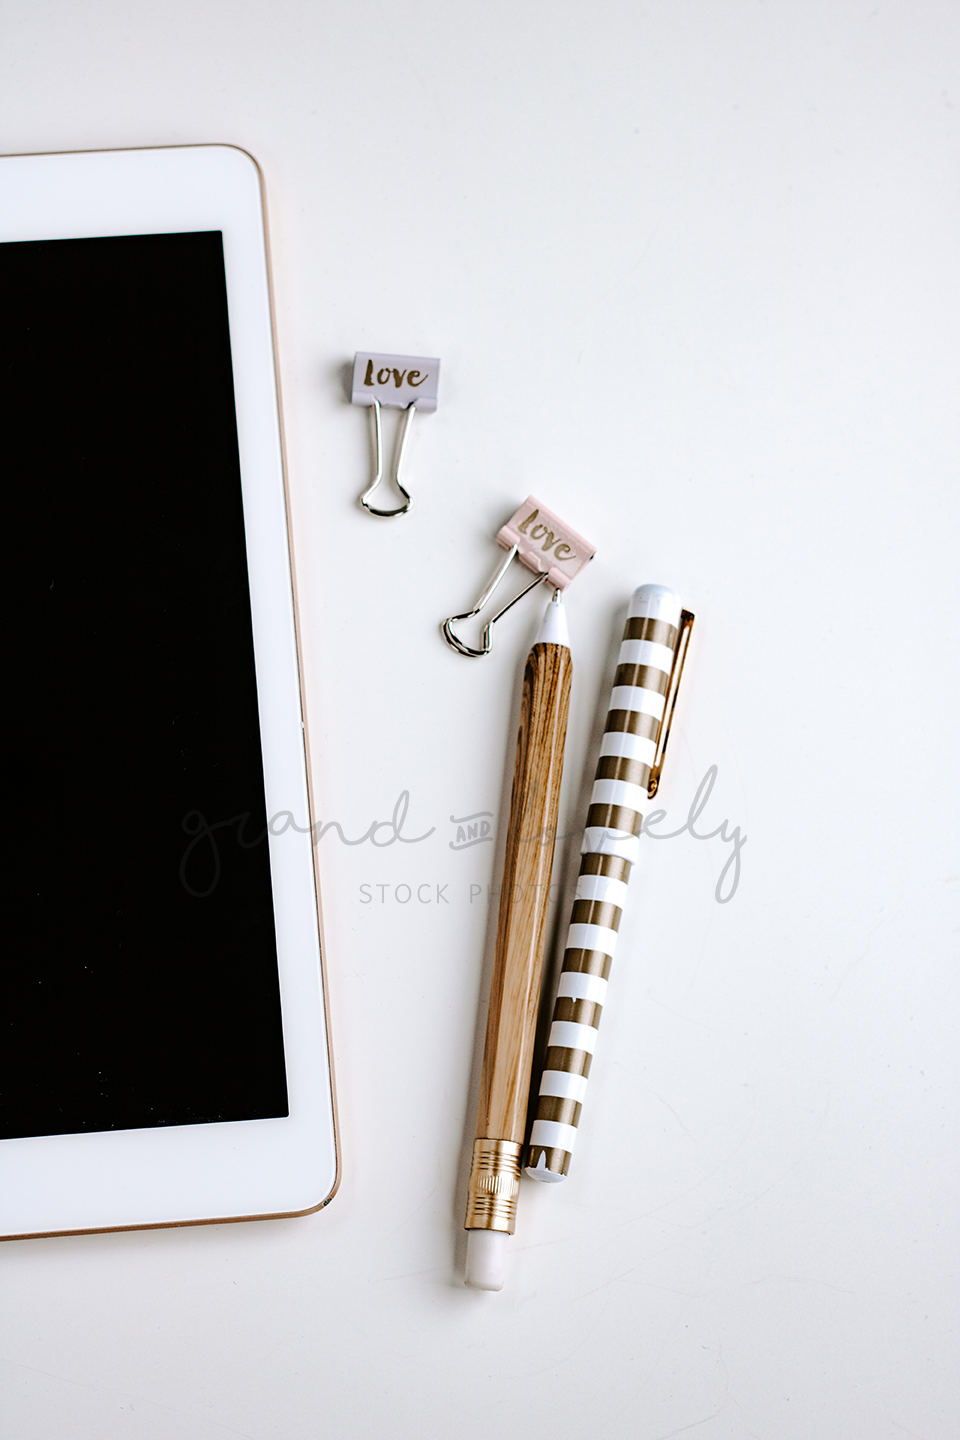 FREE Styled Stock Photo | IPAD Gold Pens white background - Grand & Lovely Stock styled photography desktops lifestyle screens desktops stationary